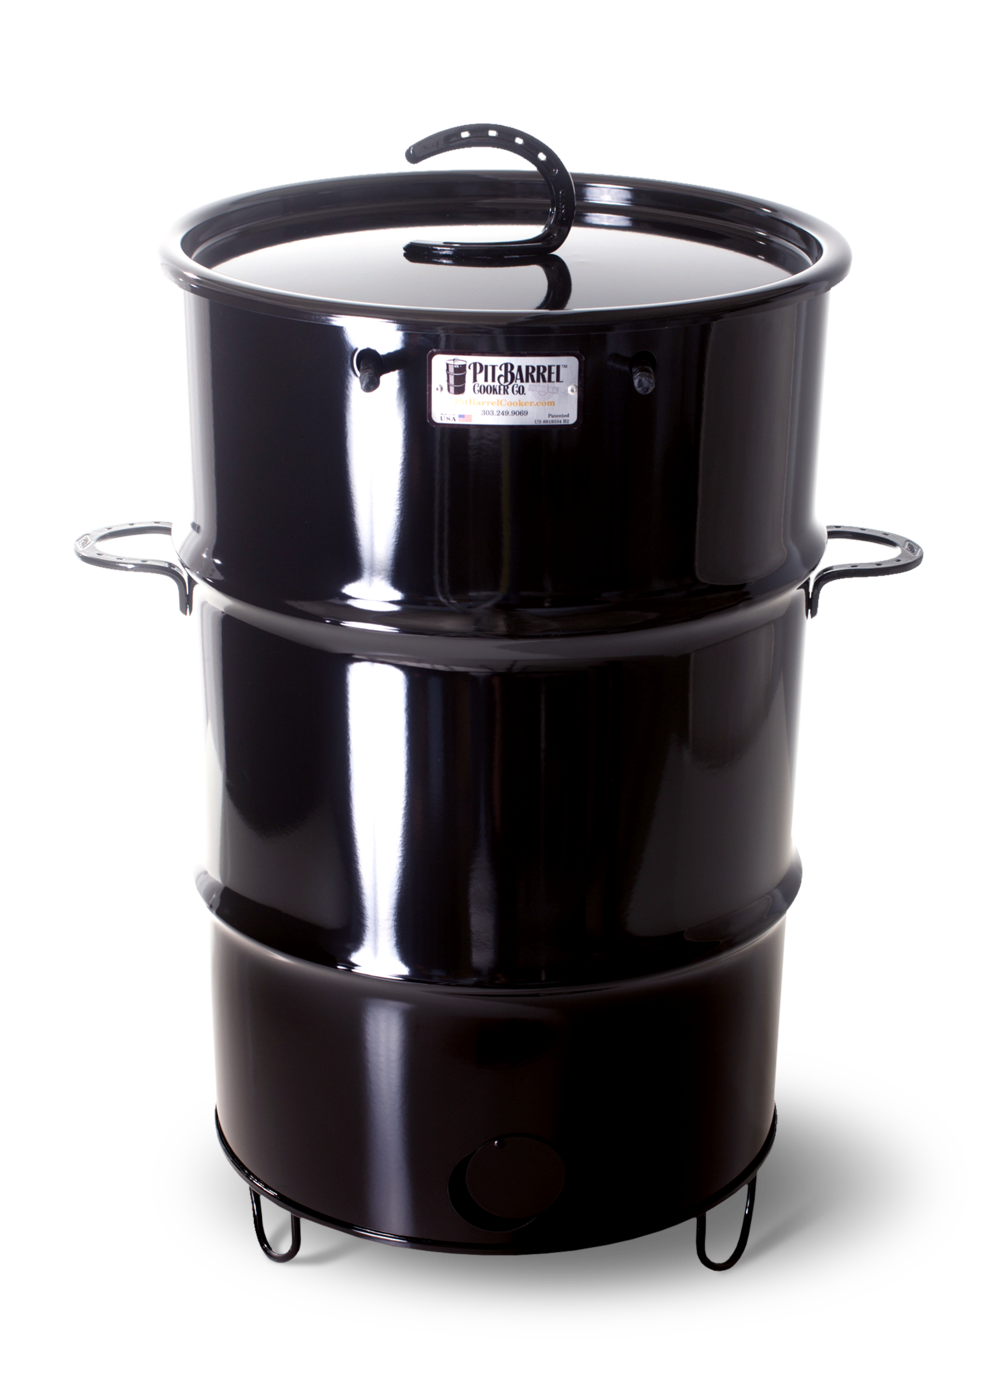 Win a Pit Barrel Cooker